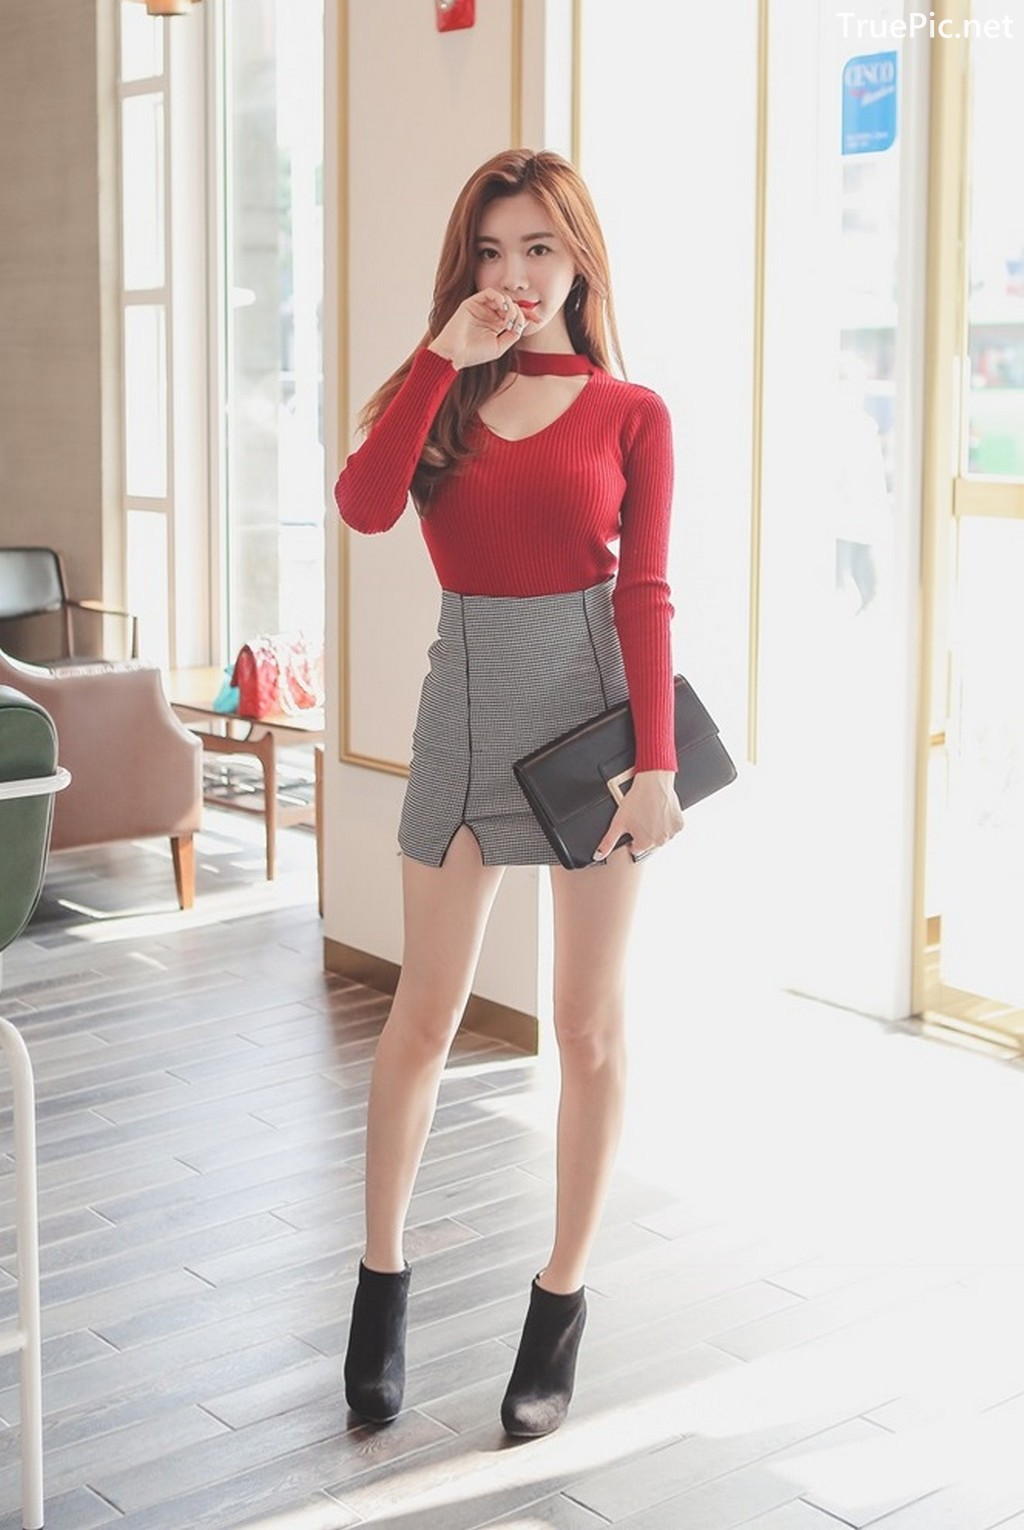 Image Korean Fashion Model - Hyemi - Office Dress Collection - TruePic.net - Picture-4